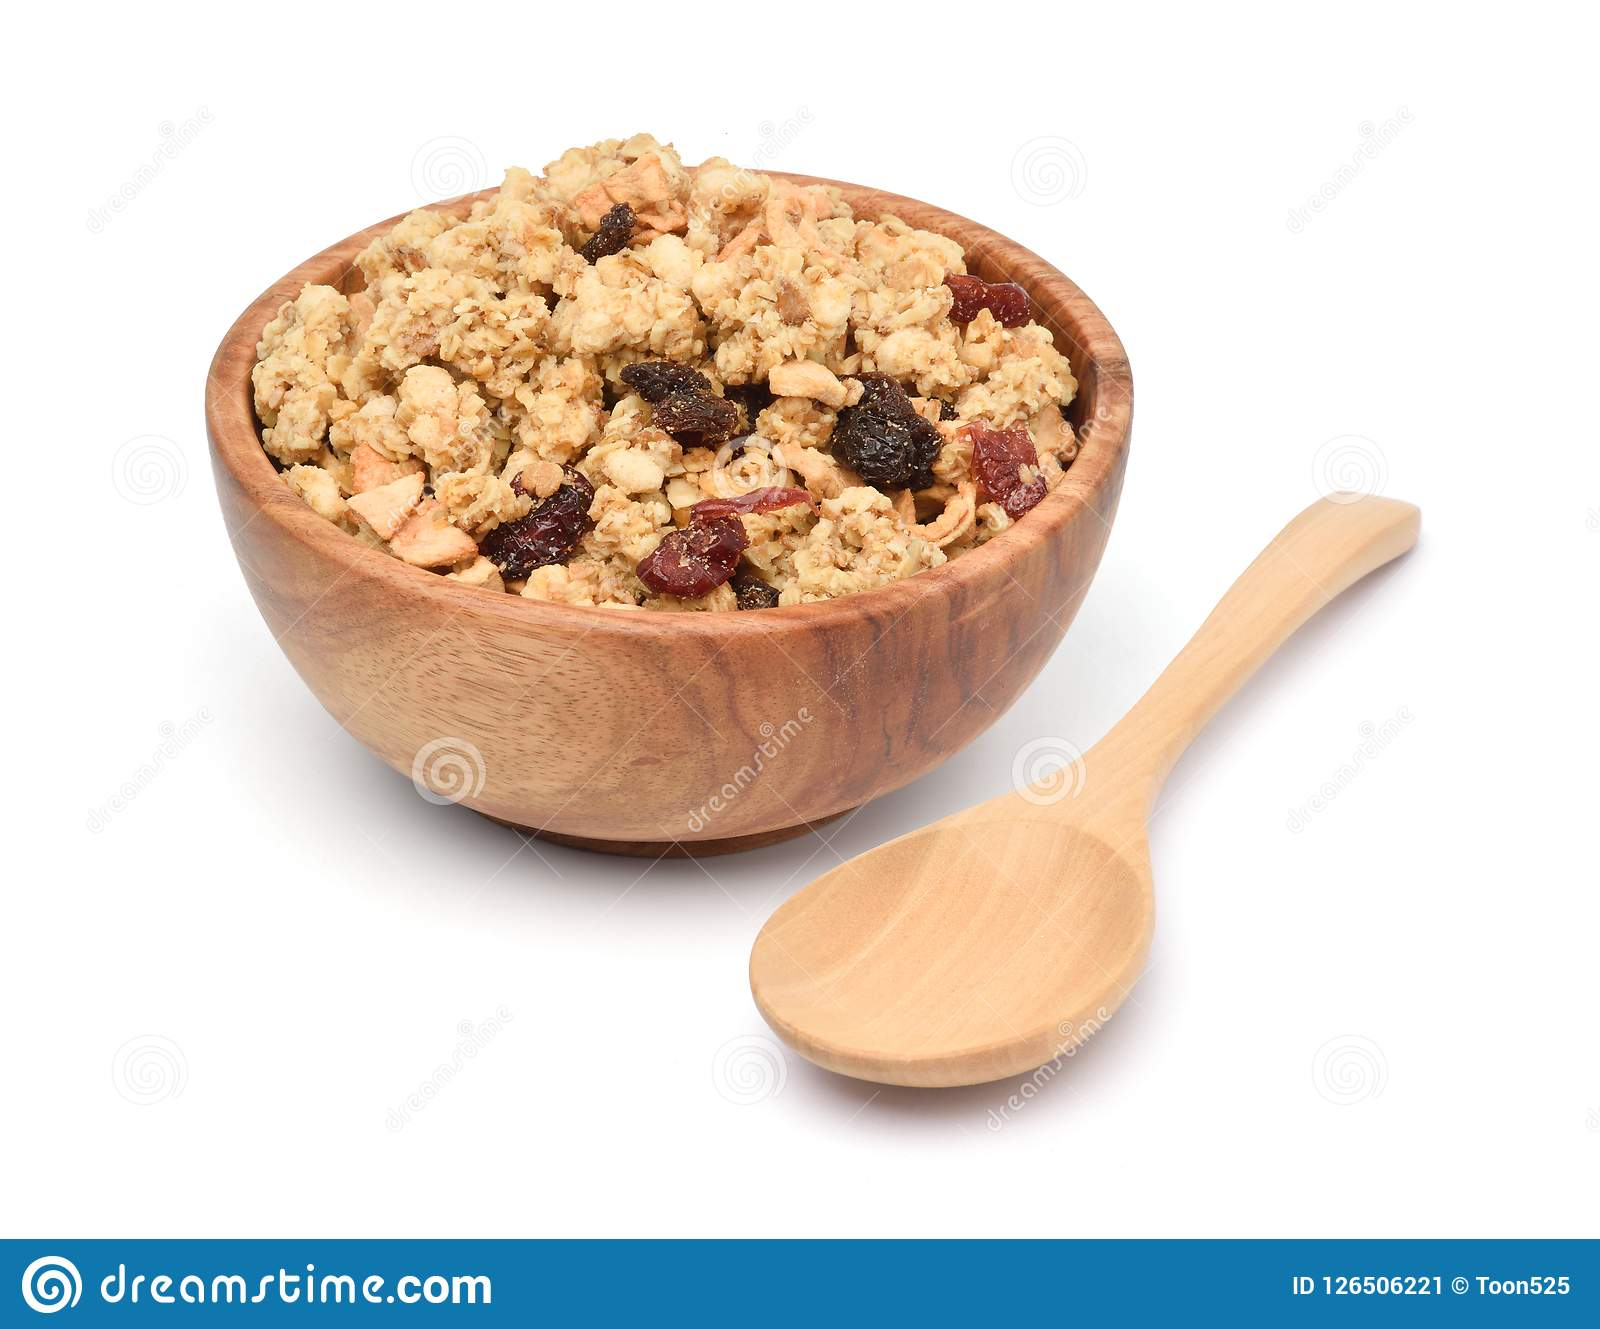 Crunchy oat granola cereal with dried fruits in wooden bowl